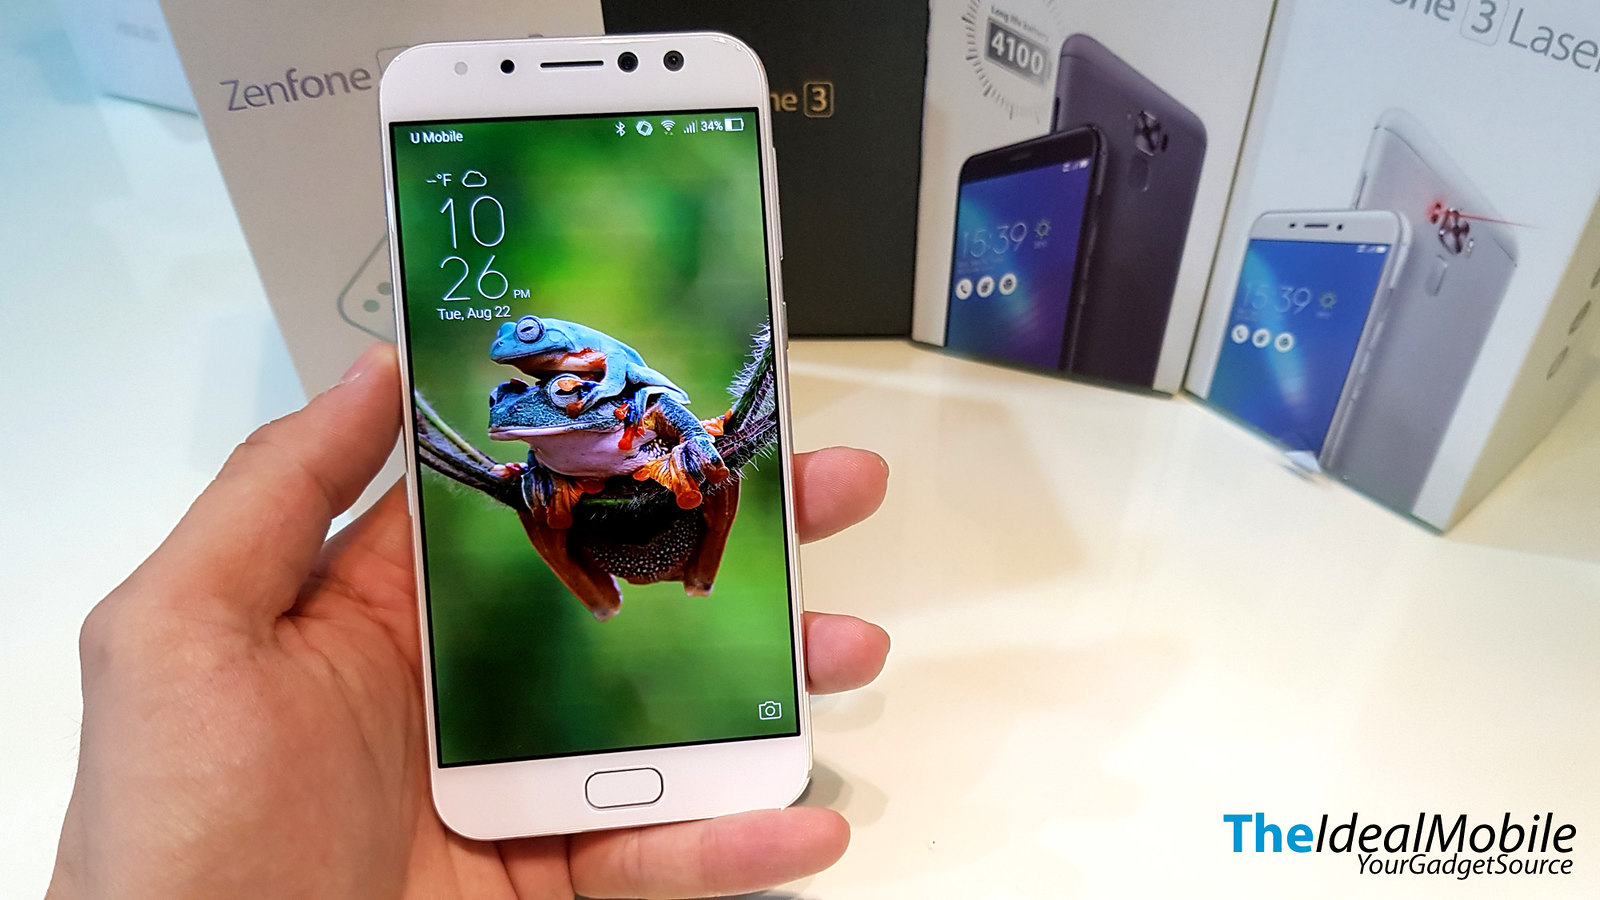 Love Wallpaper For Zenfone 5 : [REVIEW] ASUS ZenFone 4 Selfie Pro Making comeback with Dual-Front camera, Wefie Made Easier ...